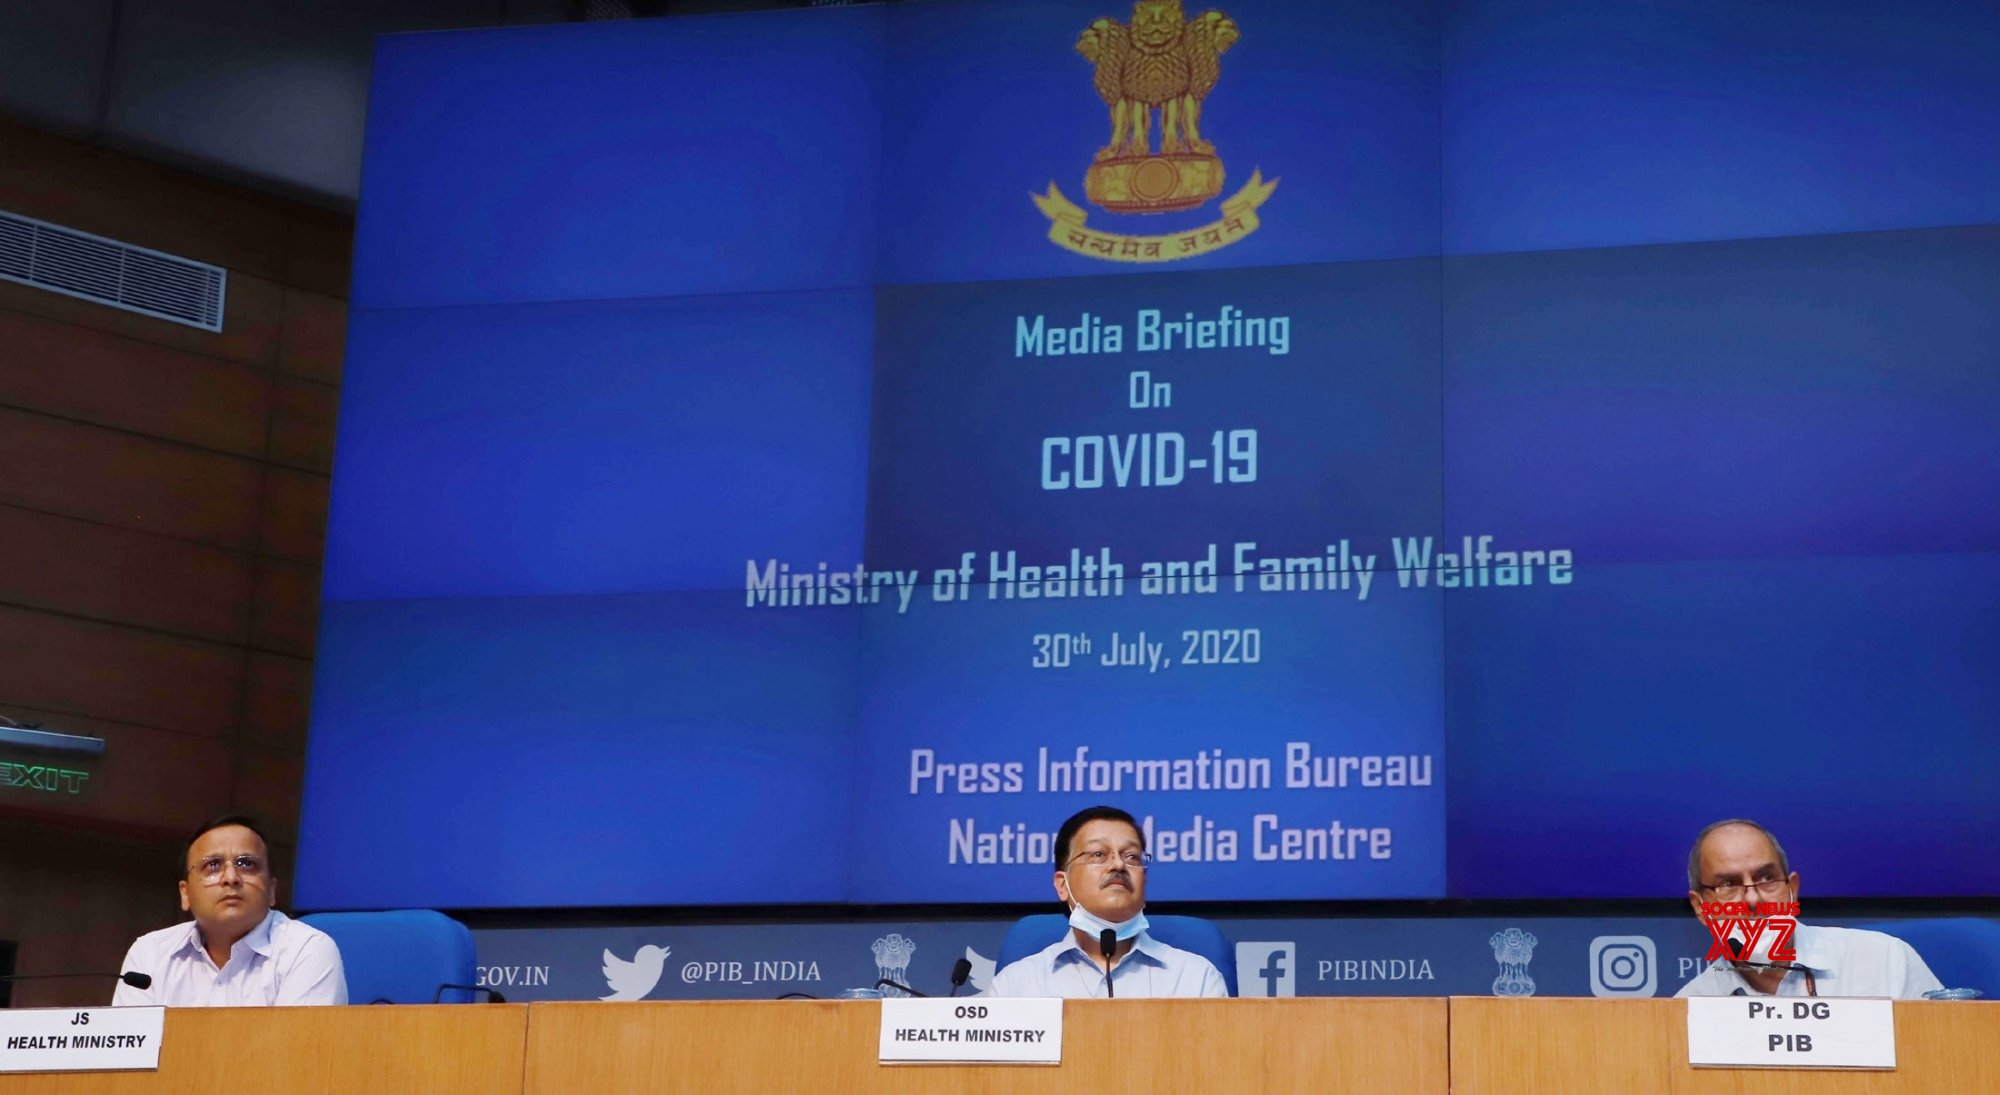 New Delhi: Health Ministry holds press conference on COVID - 19 #Gallery